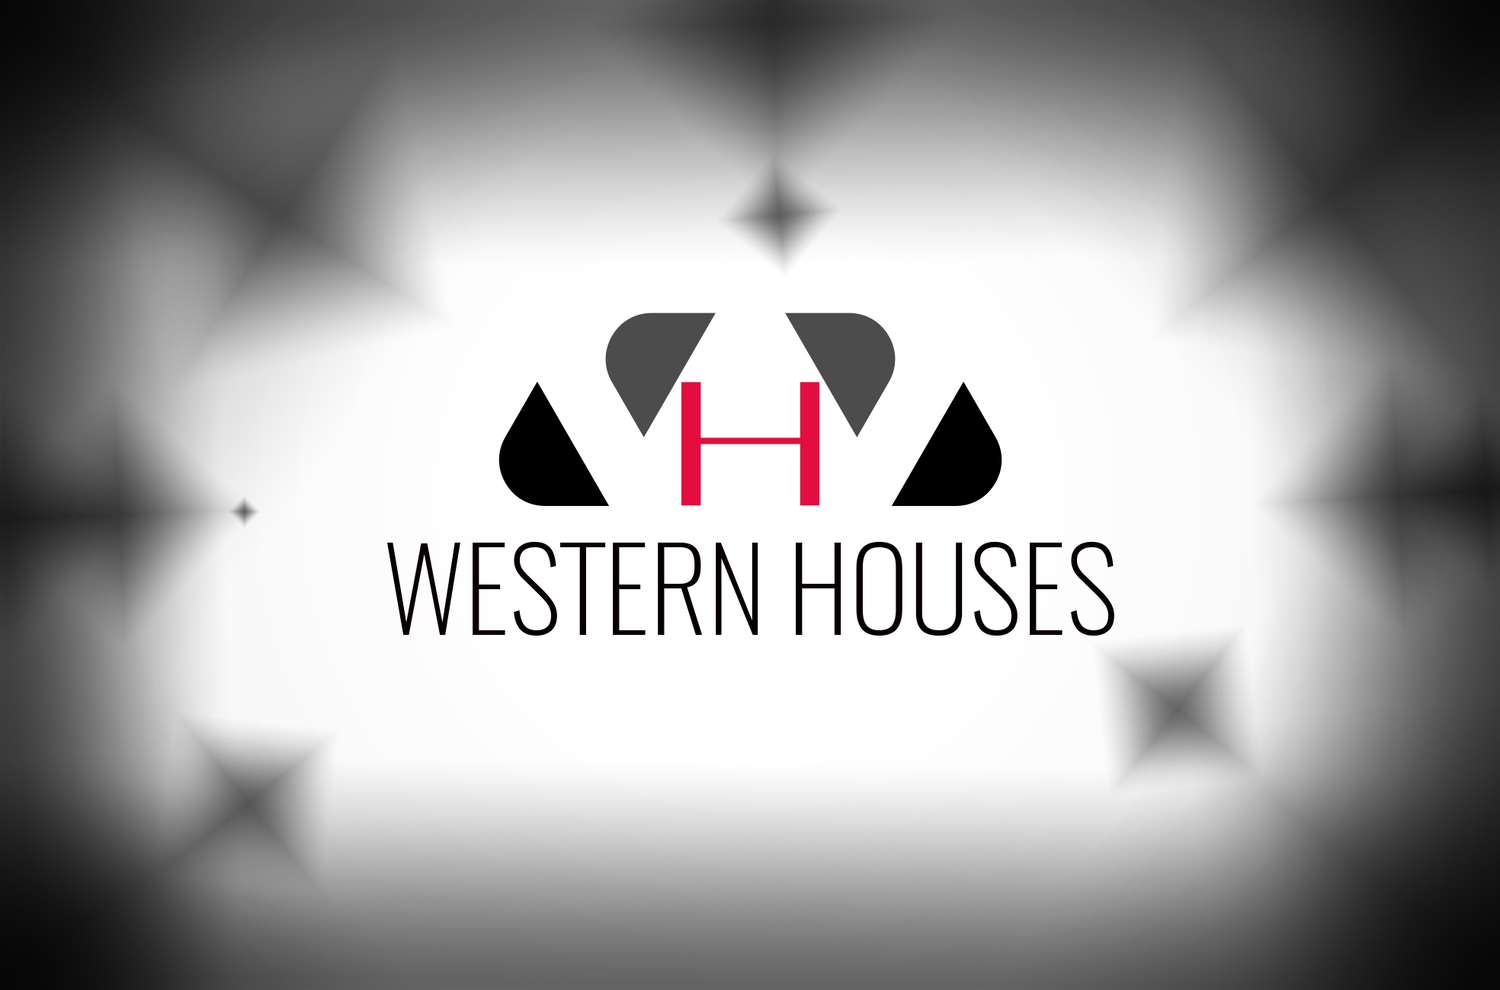 Western Houses Pre Fabricated Homes — AIGC